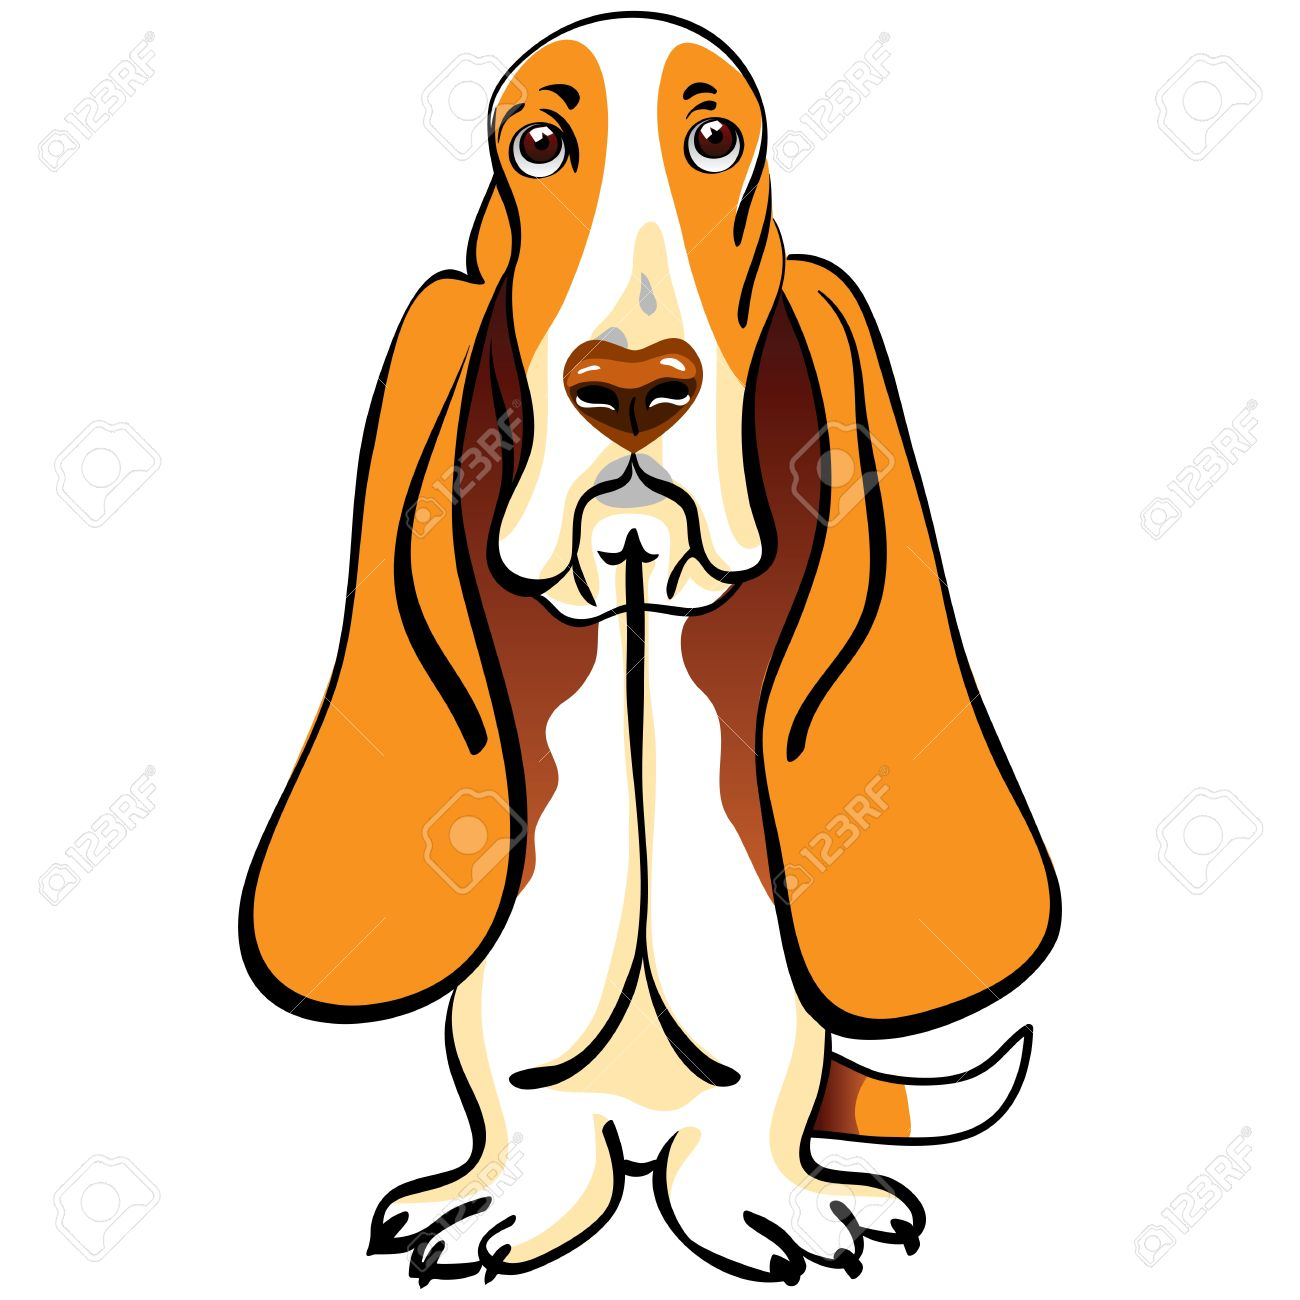 Basset clipart #7, Download drawings